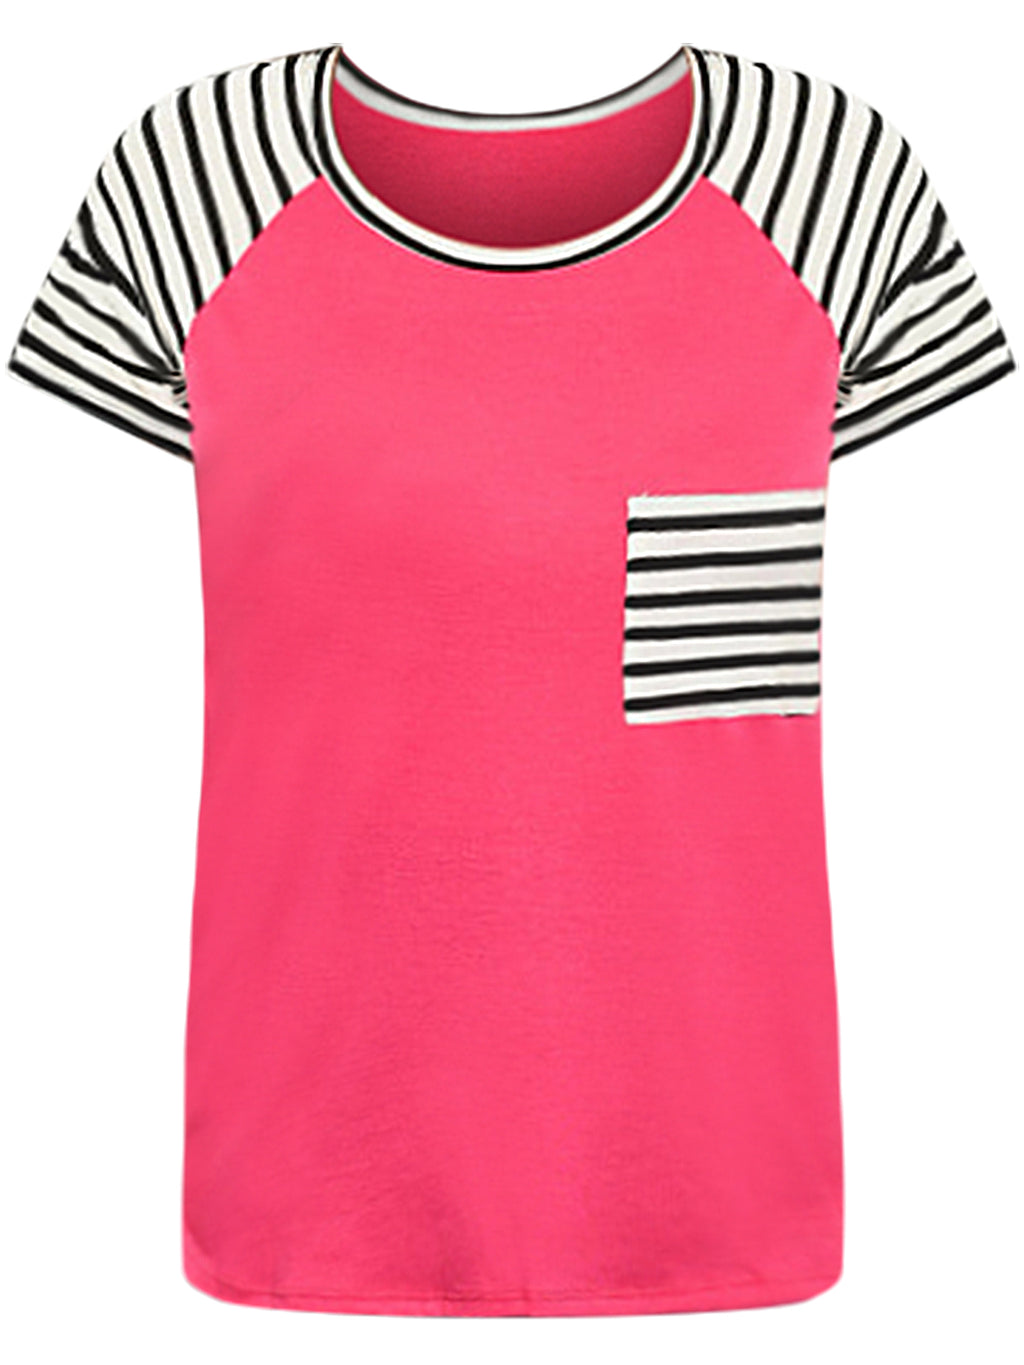 Hot Pink Black & White Striped Plus Size T-Shirt